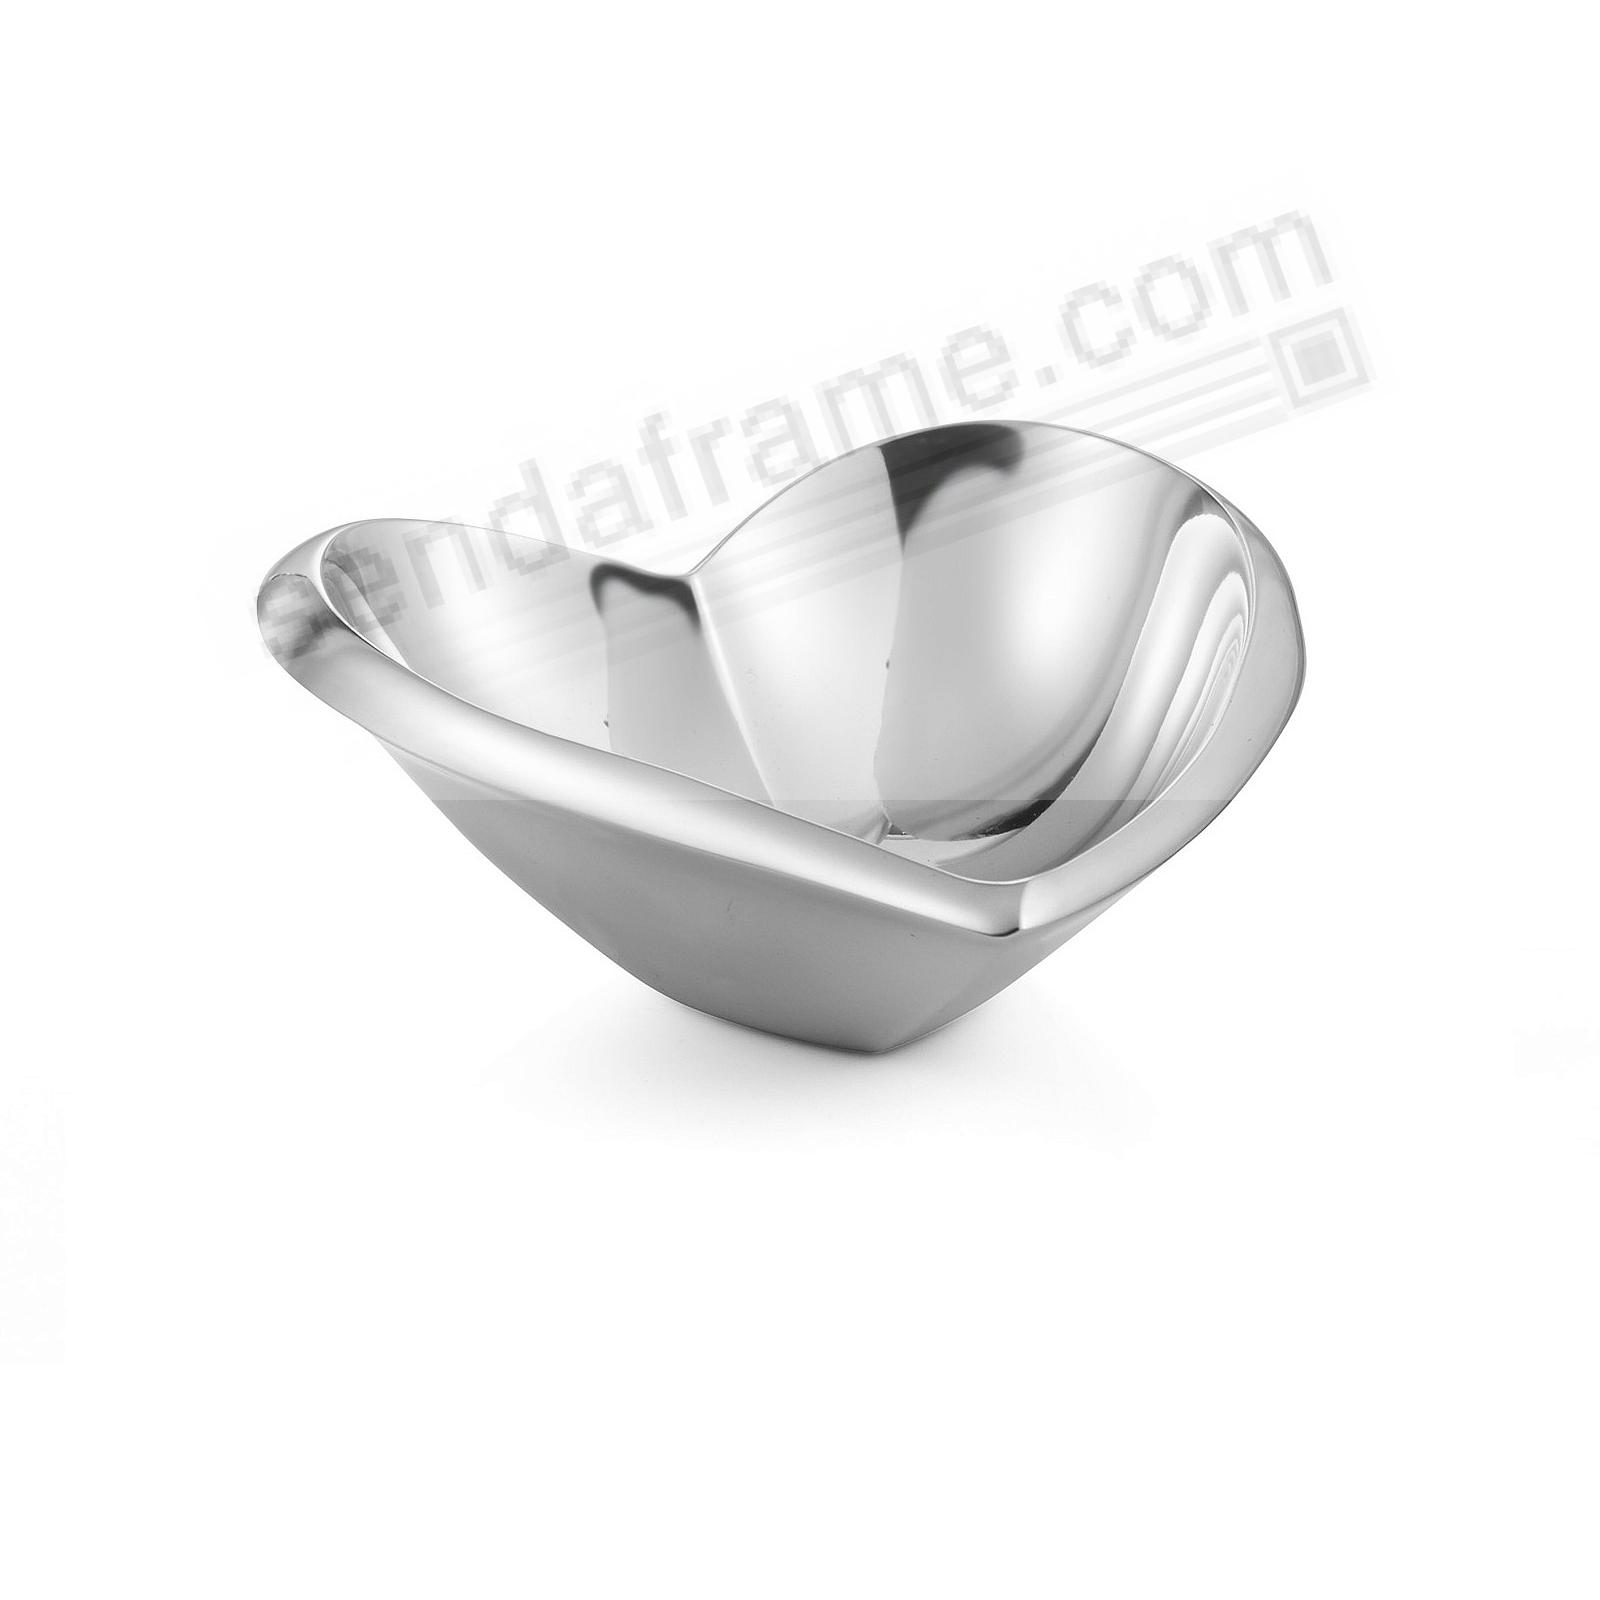 The Original AMORE MINI BOWL by Nambe®